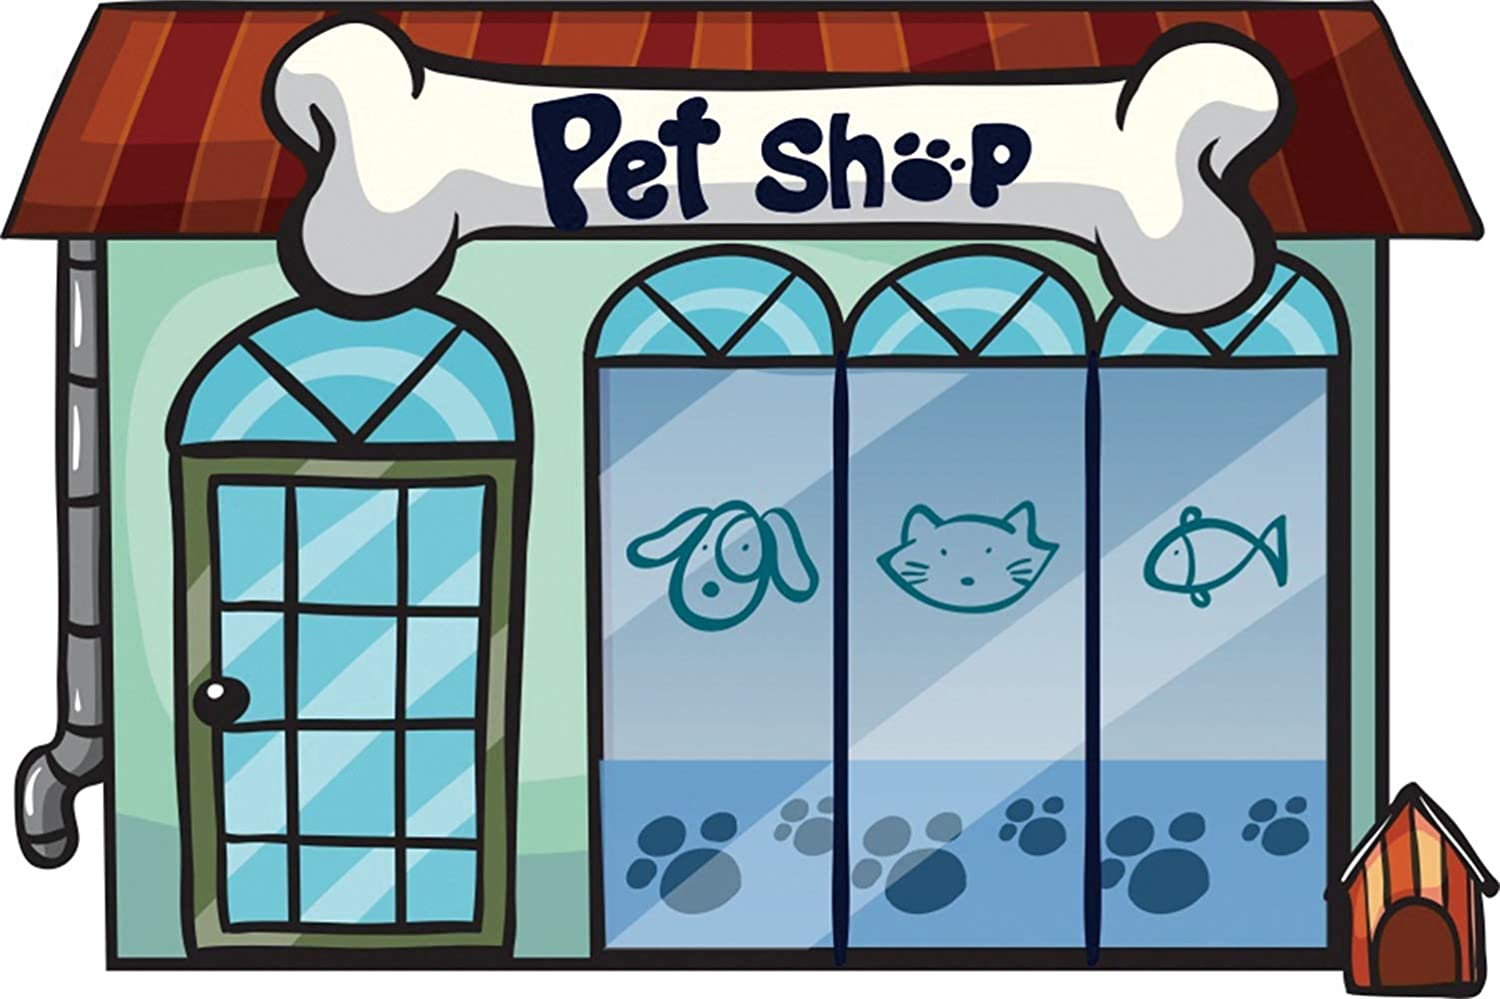 Leowefowa 8x6.5ft Cartoon Pet Shop Storefront Backdrop Vinyl Boy 1st Birthday Party Photography Background School Play Background Pets Photo Booth Props Child Baby Slumber Party Banner